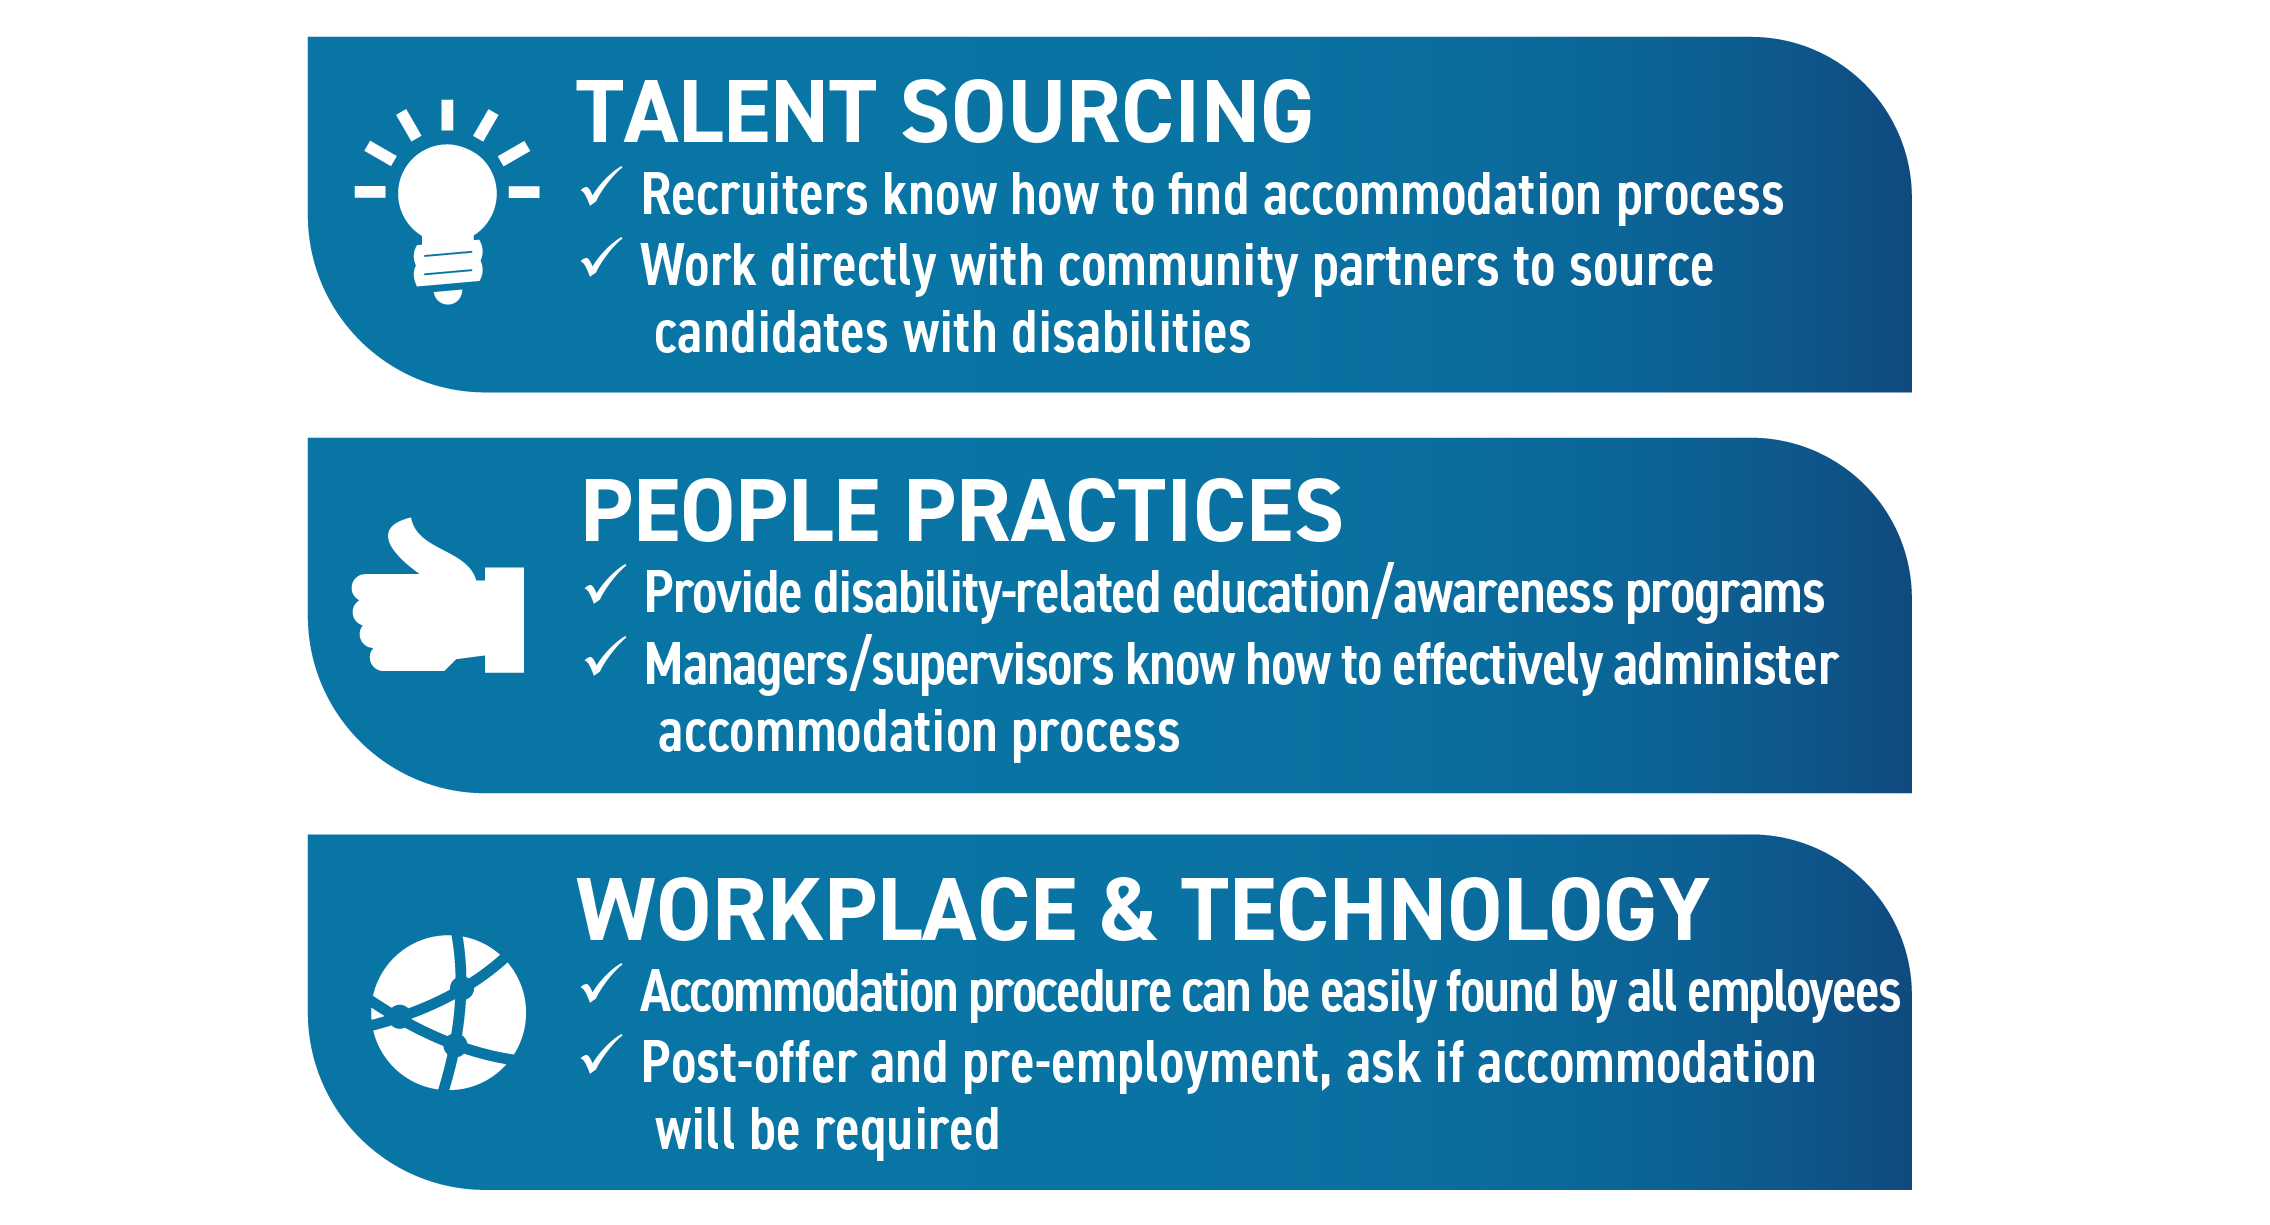 Talent Sourcing: Recruiters know how to find accommodation process; Work directly with community partners to source candidates with disabilities. People Practices: Provide disability-related education/awareness programs; Managers/supervisors know how to effectively administer accommodation process. Workplace & Technology: Accommodation procedure can be easily found by all employees' Post-offer and pre-employment, ask if accommodation will be required.